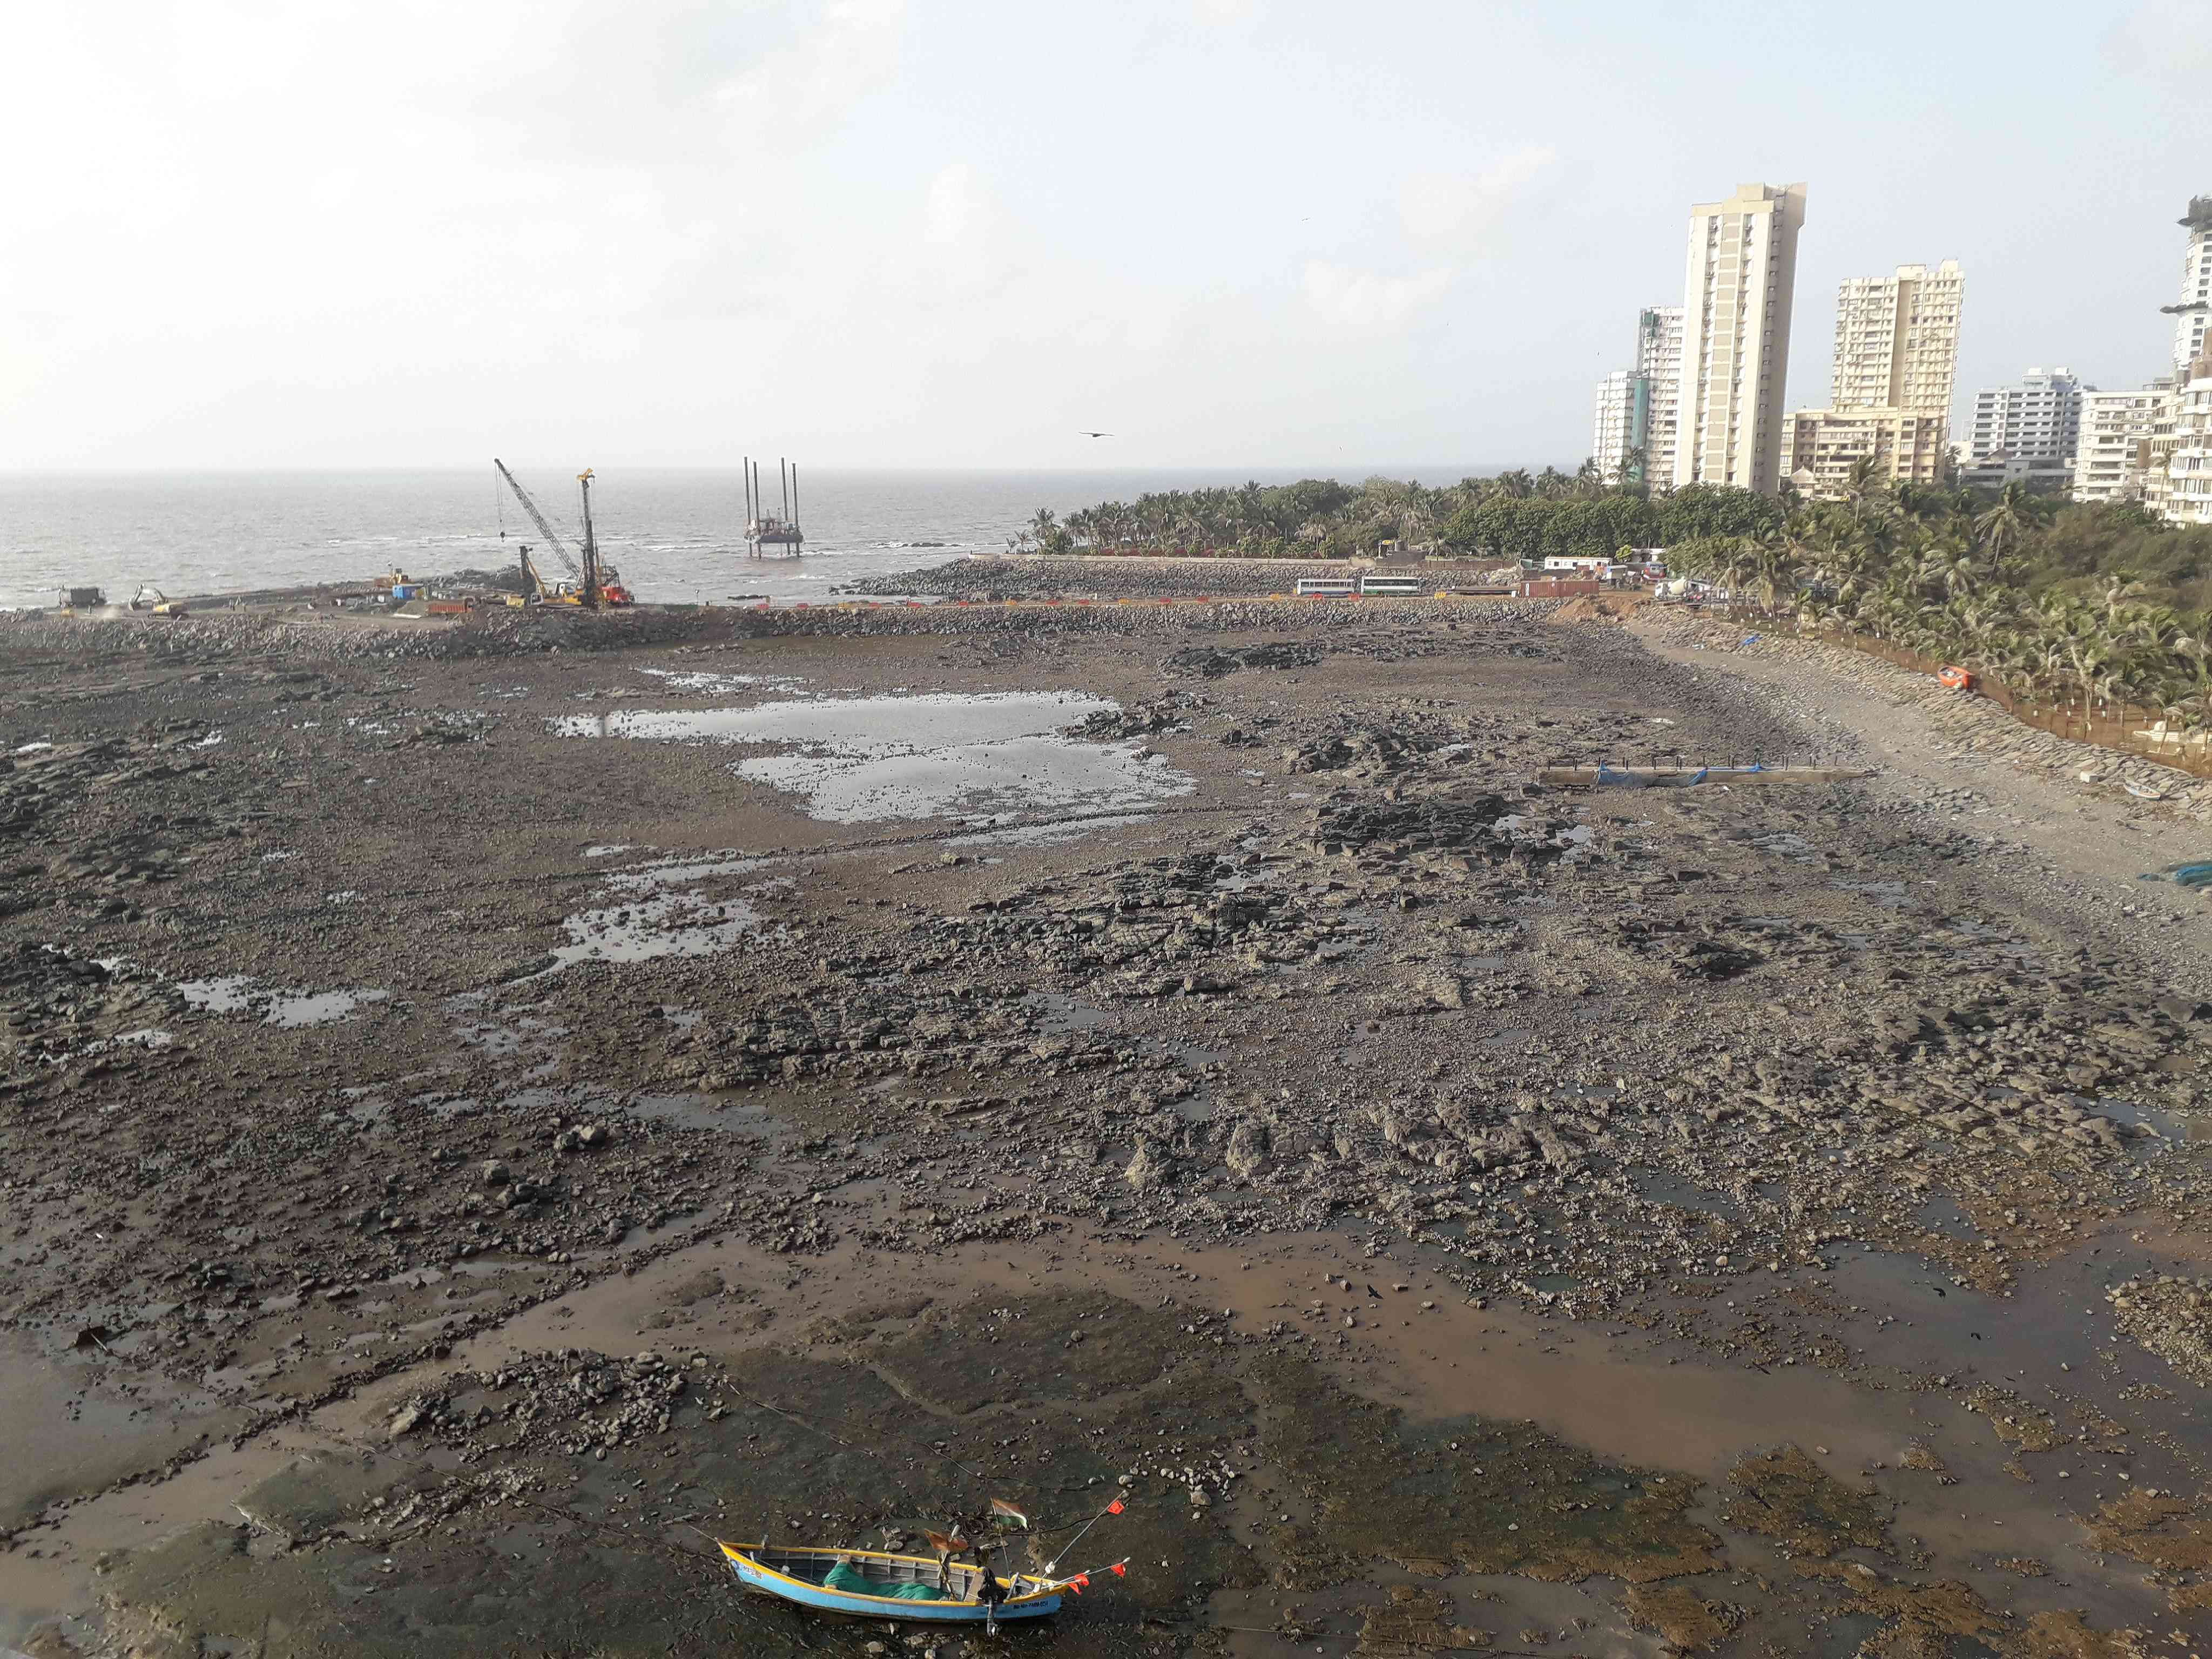 The coastal road project proposes to reclaim this entire portion of the coast at Breach Candy, which fills up with water during high-tide and is used by fishing communities. (Photo credit: Aarefa Johari).